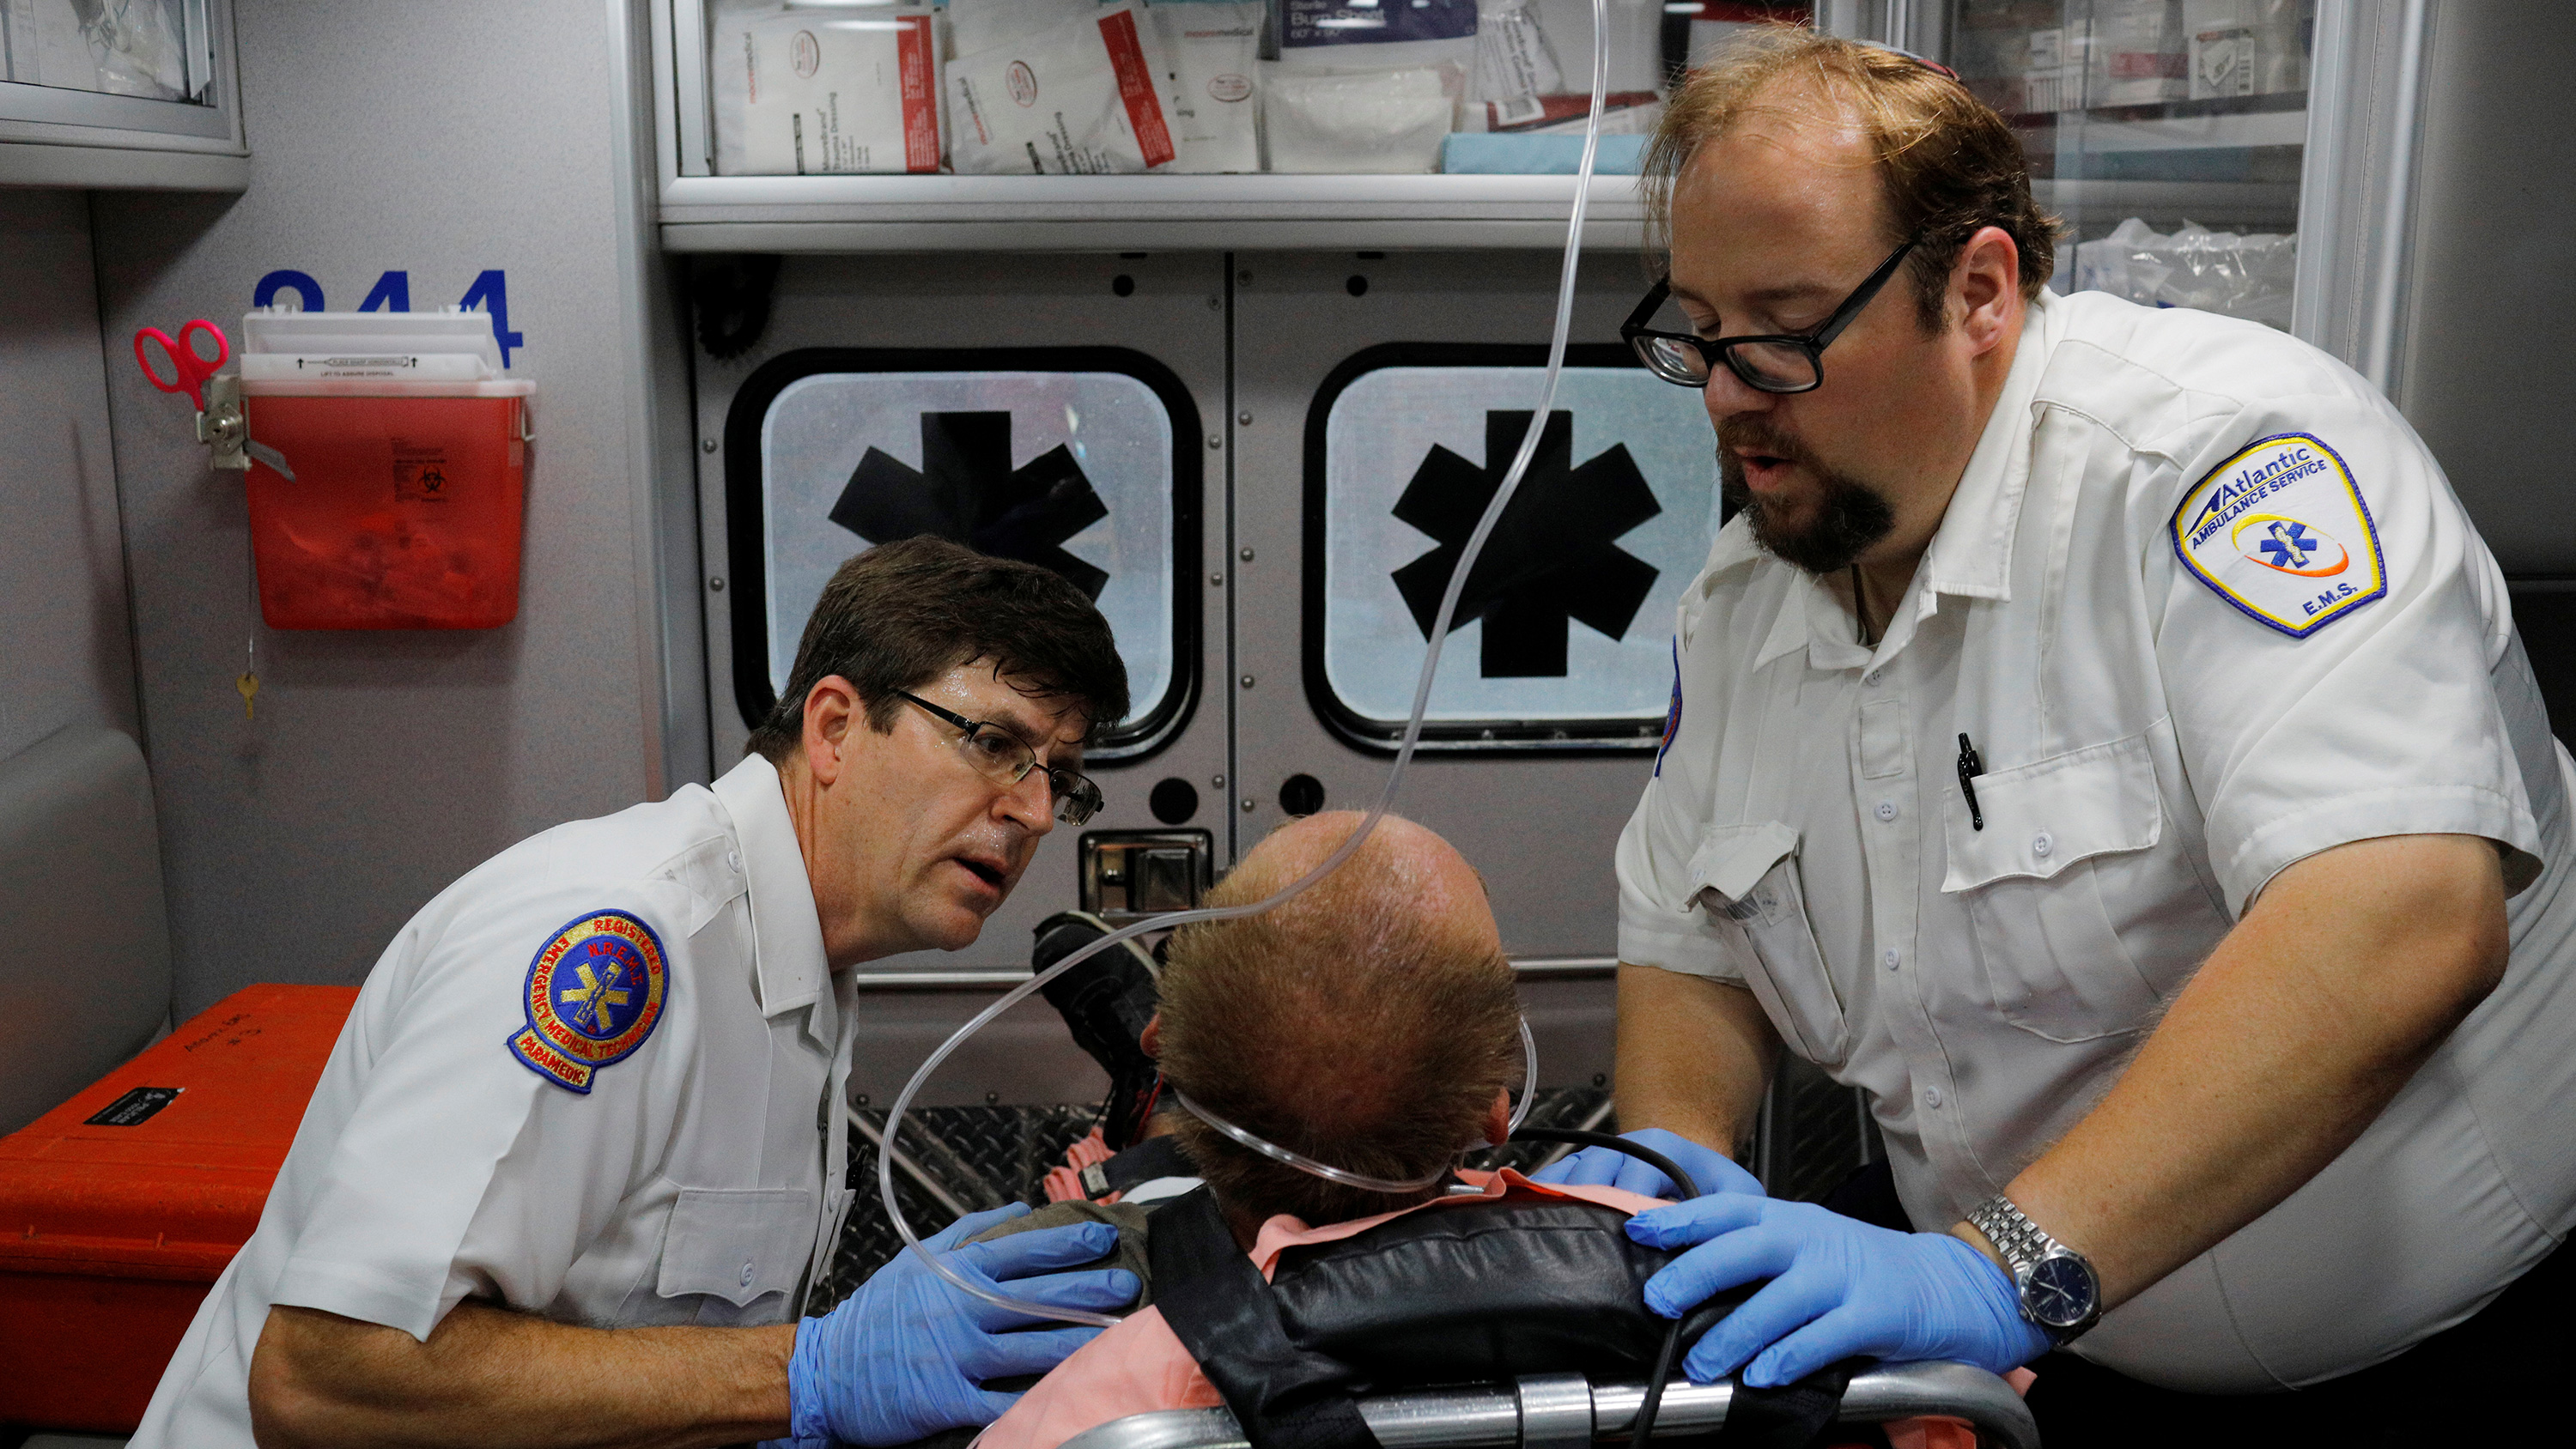 The photo shows the two medics administering to a man in a gurney.